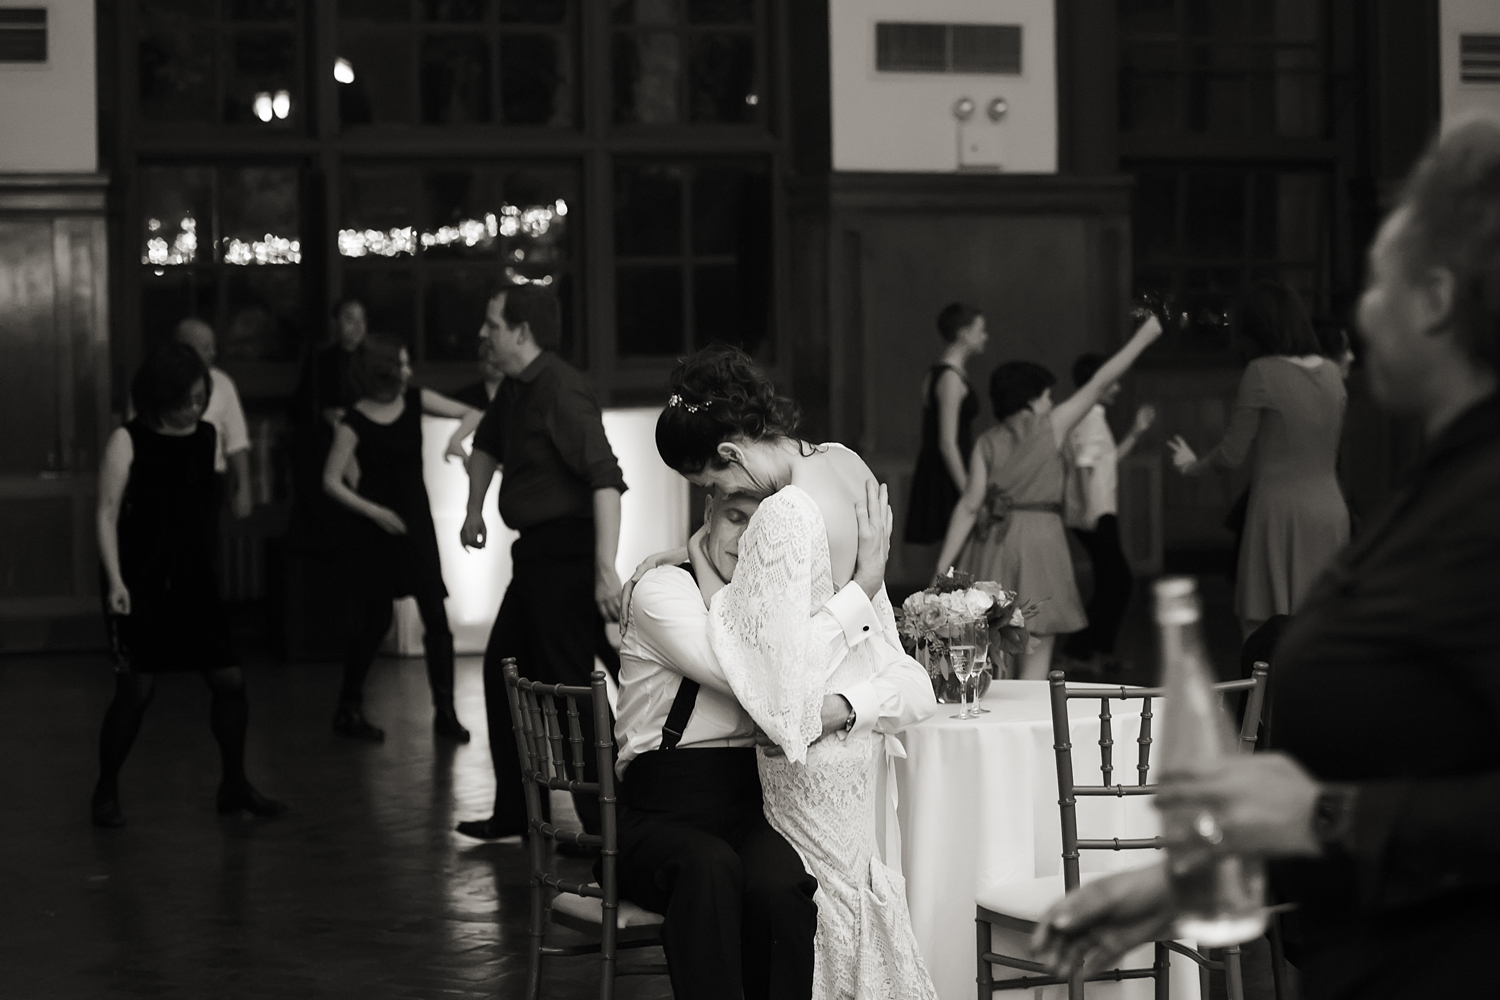 bride and groom having a moment together during wedding reception at Celebrate at Snug Harbor